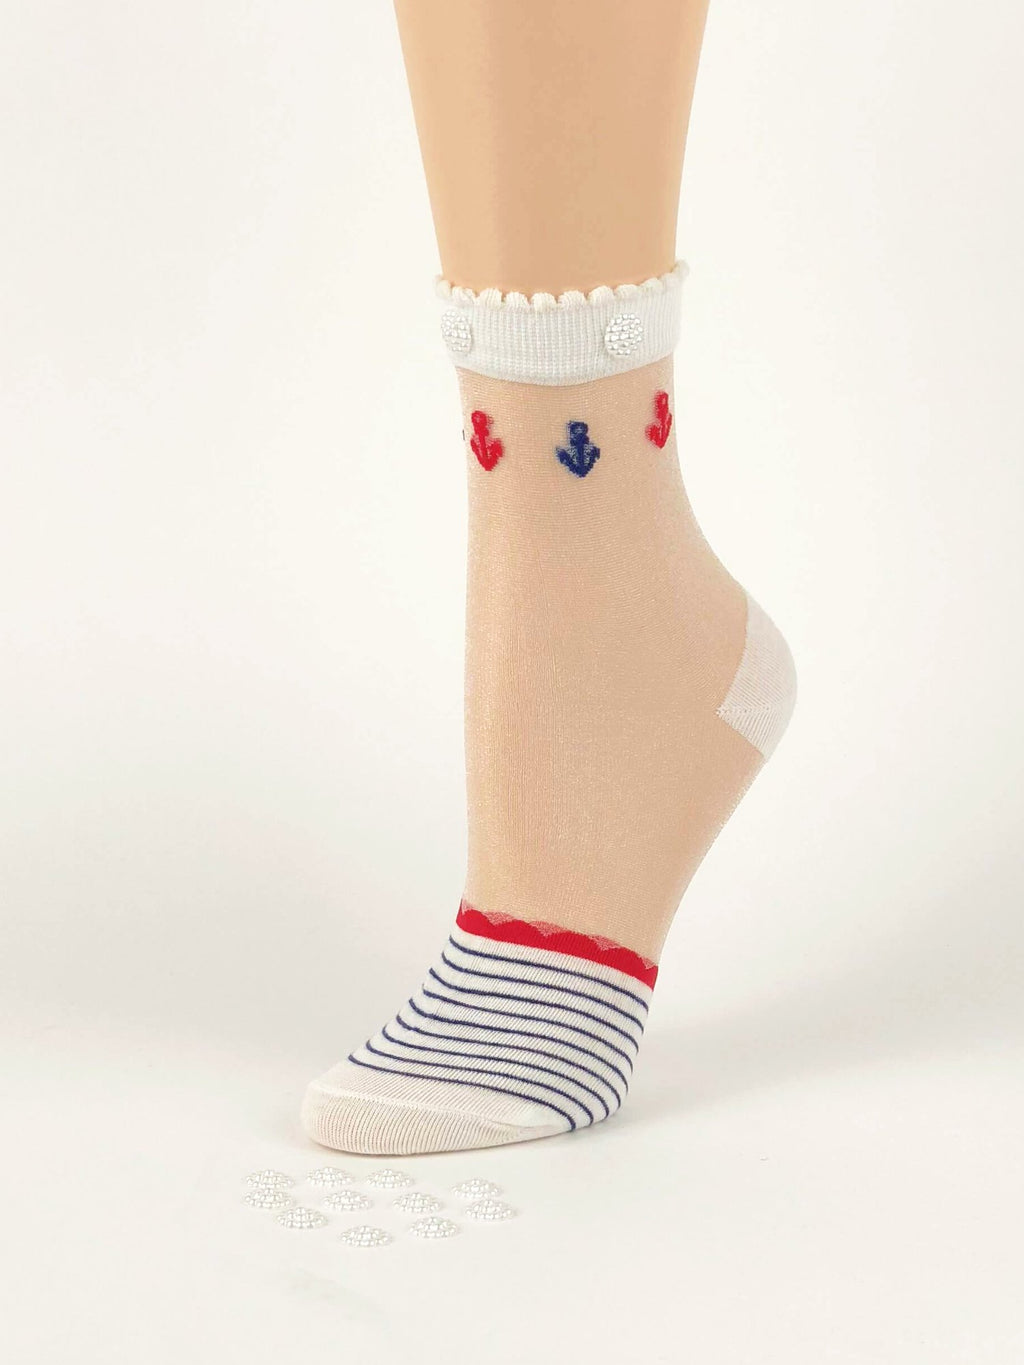 Stunning Blue/Red Stripped Sheer Socks - Global Trendz Fashion®